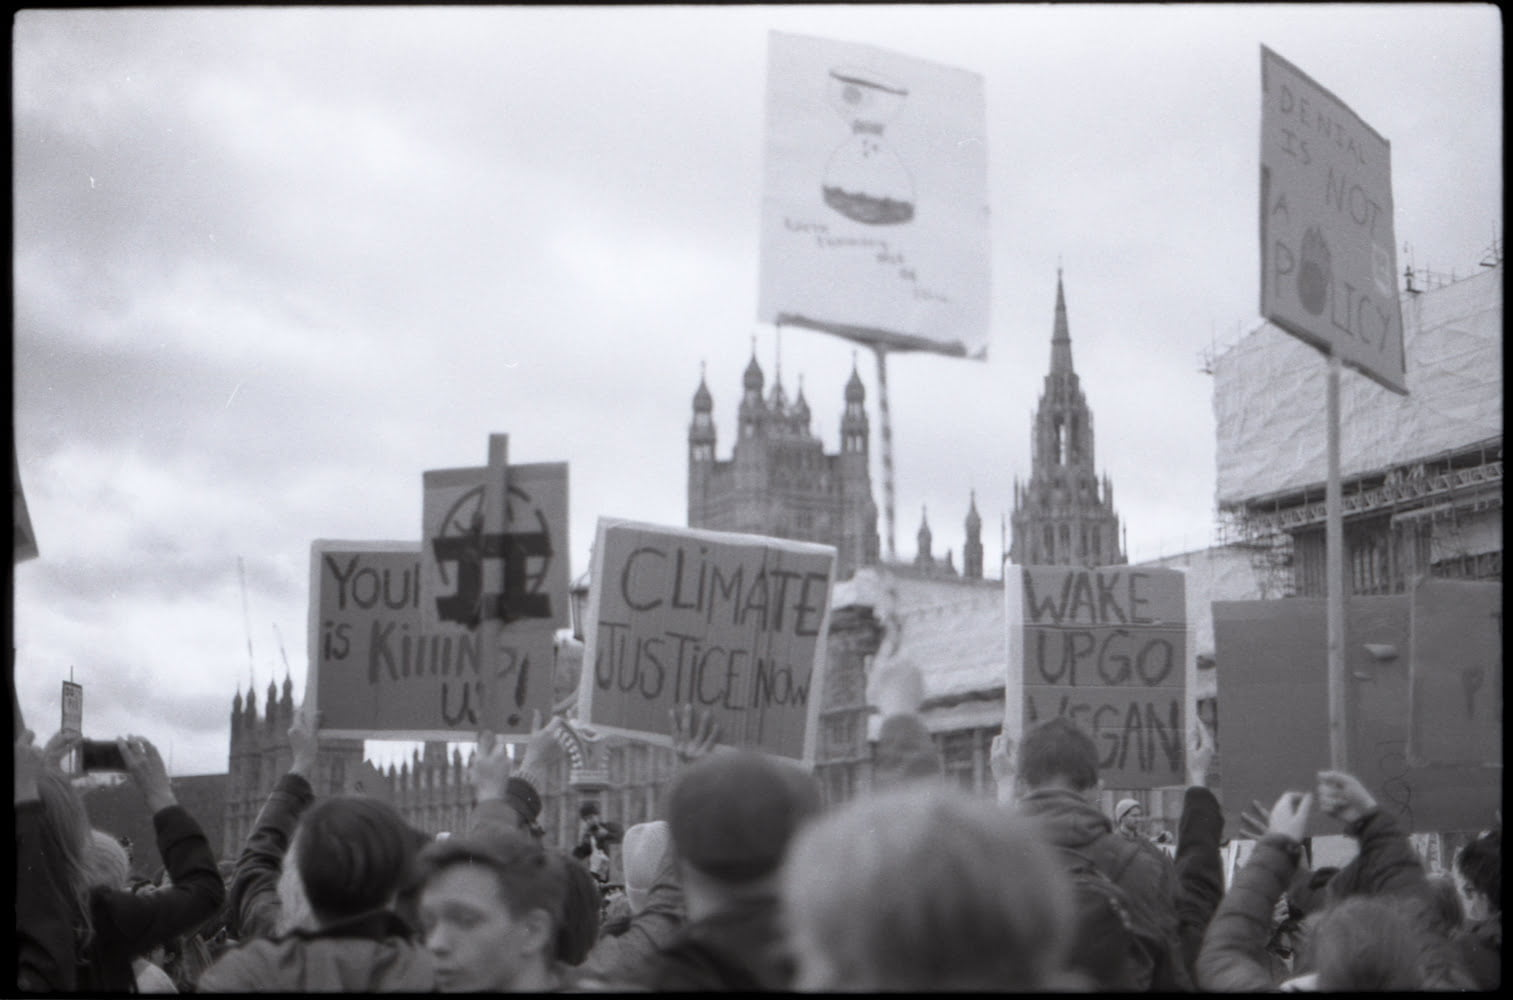 a crowd holding up banners in front of the parliament skyline